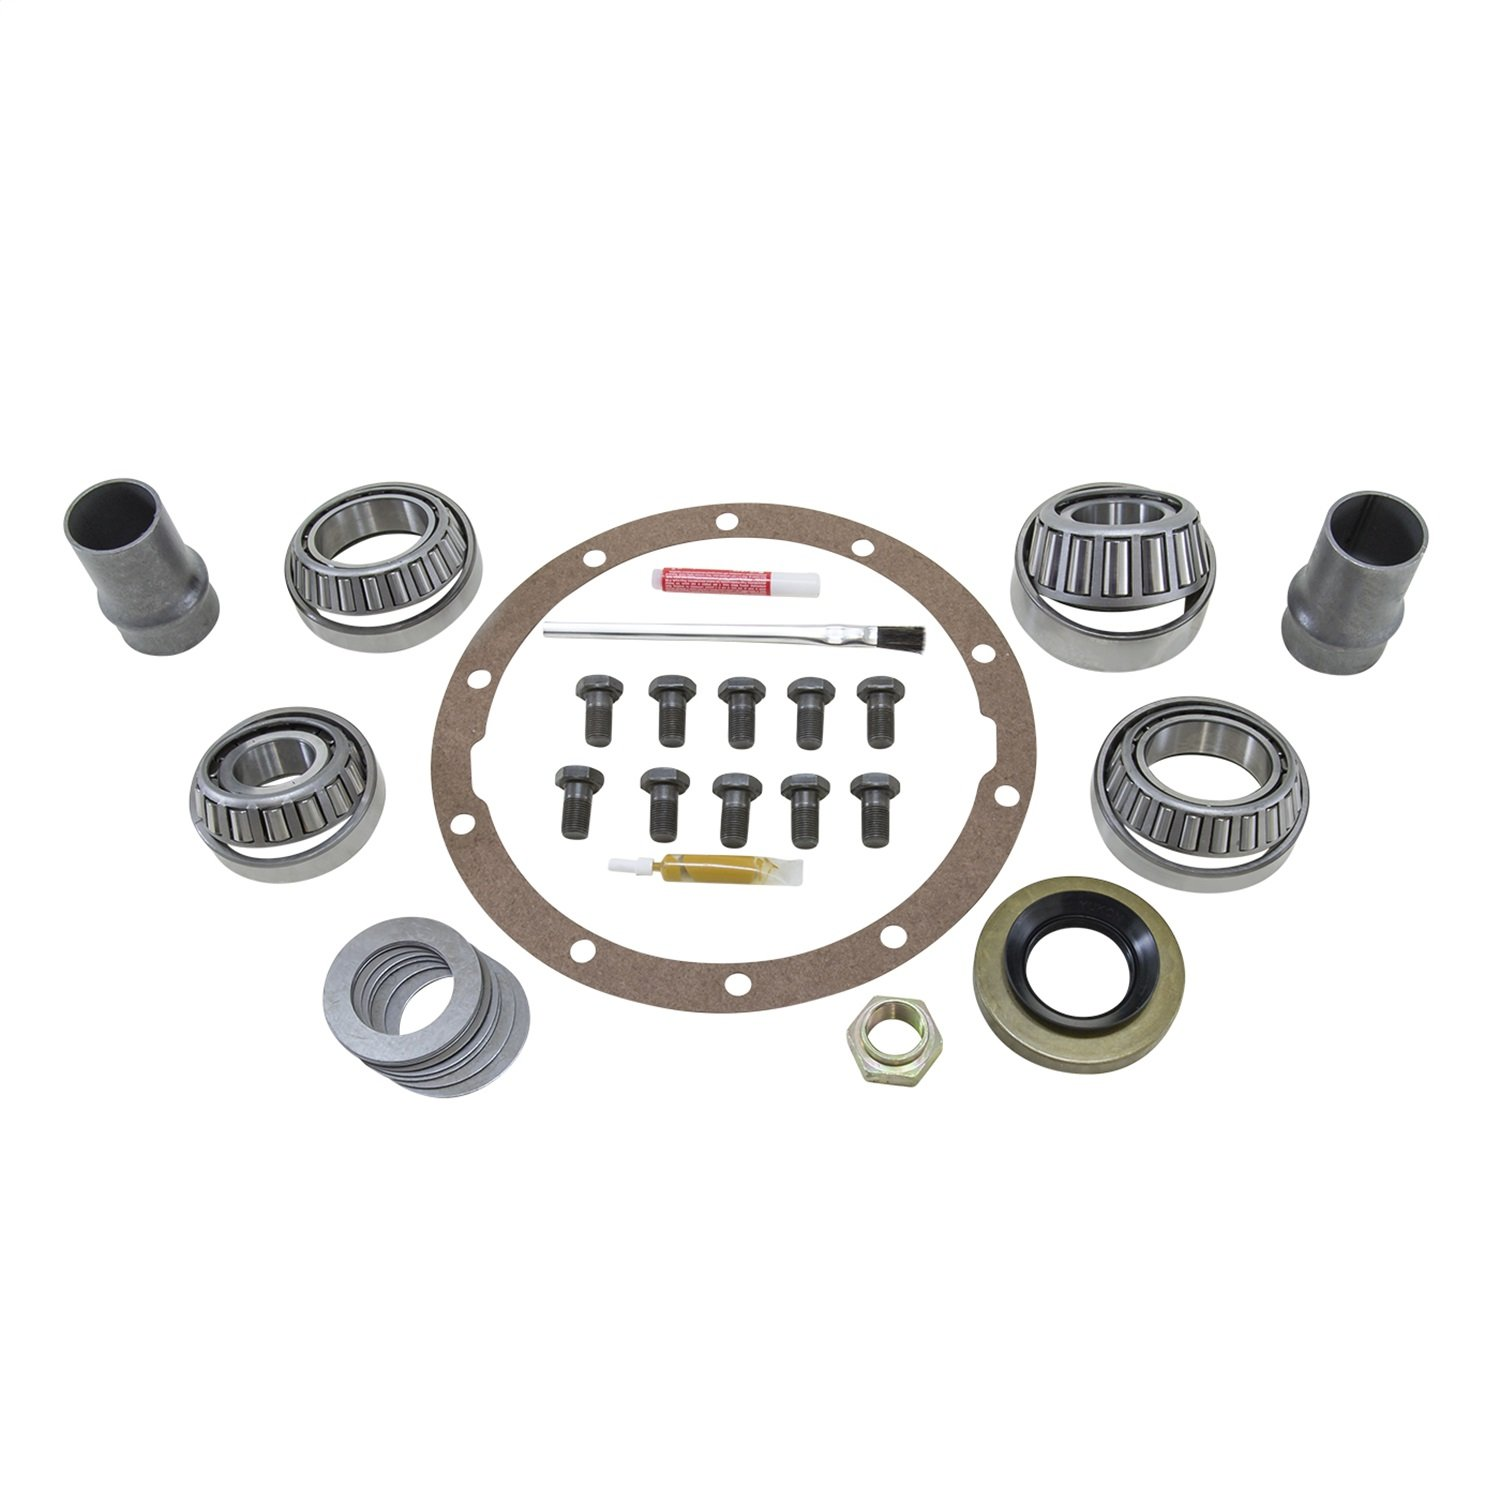 Yukon (YK TACOMA-LOC) Master Overhaul Kit for Toyota Tacoma/4Runner with Factory Electric Locker